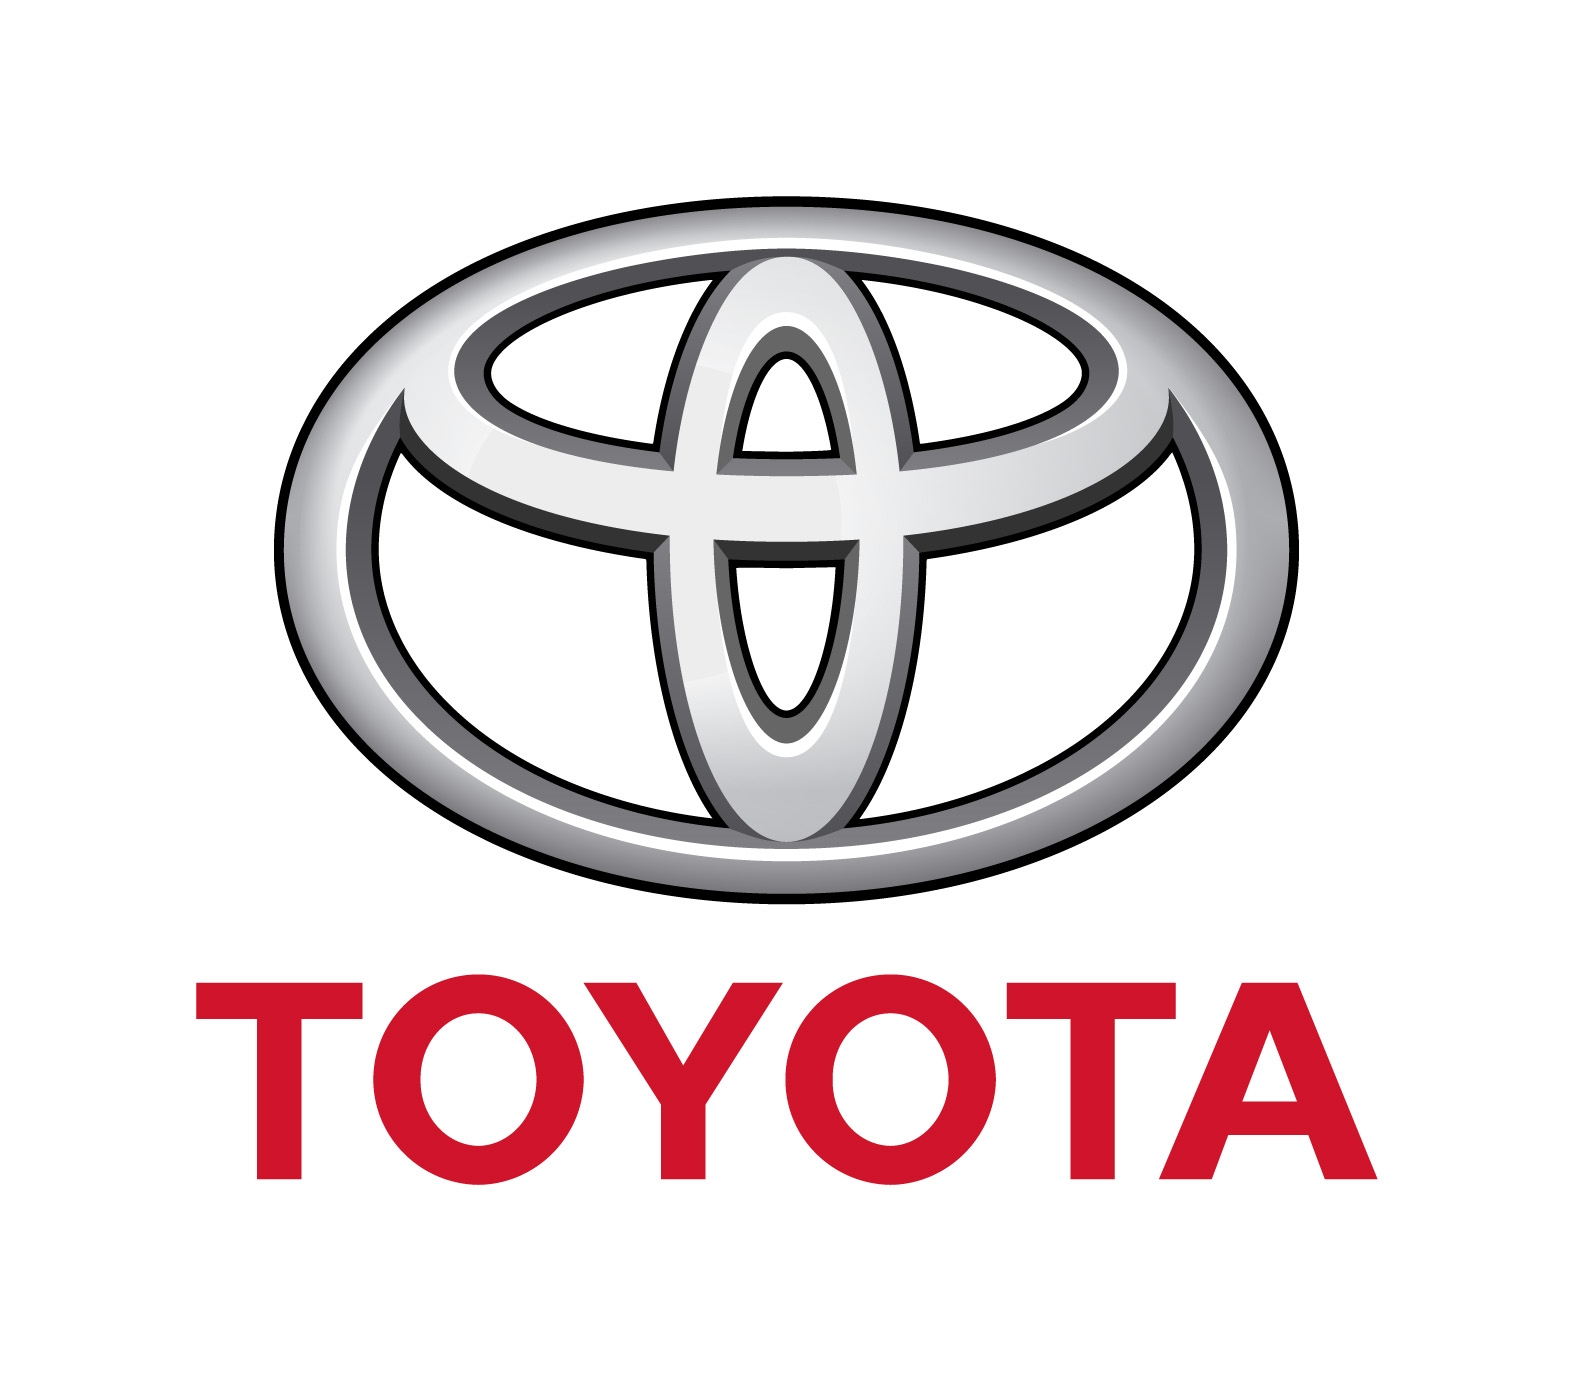 Toyota's future plans in the US